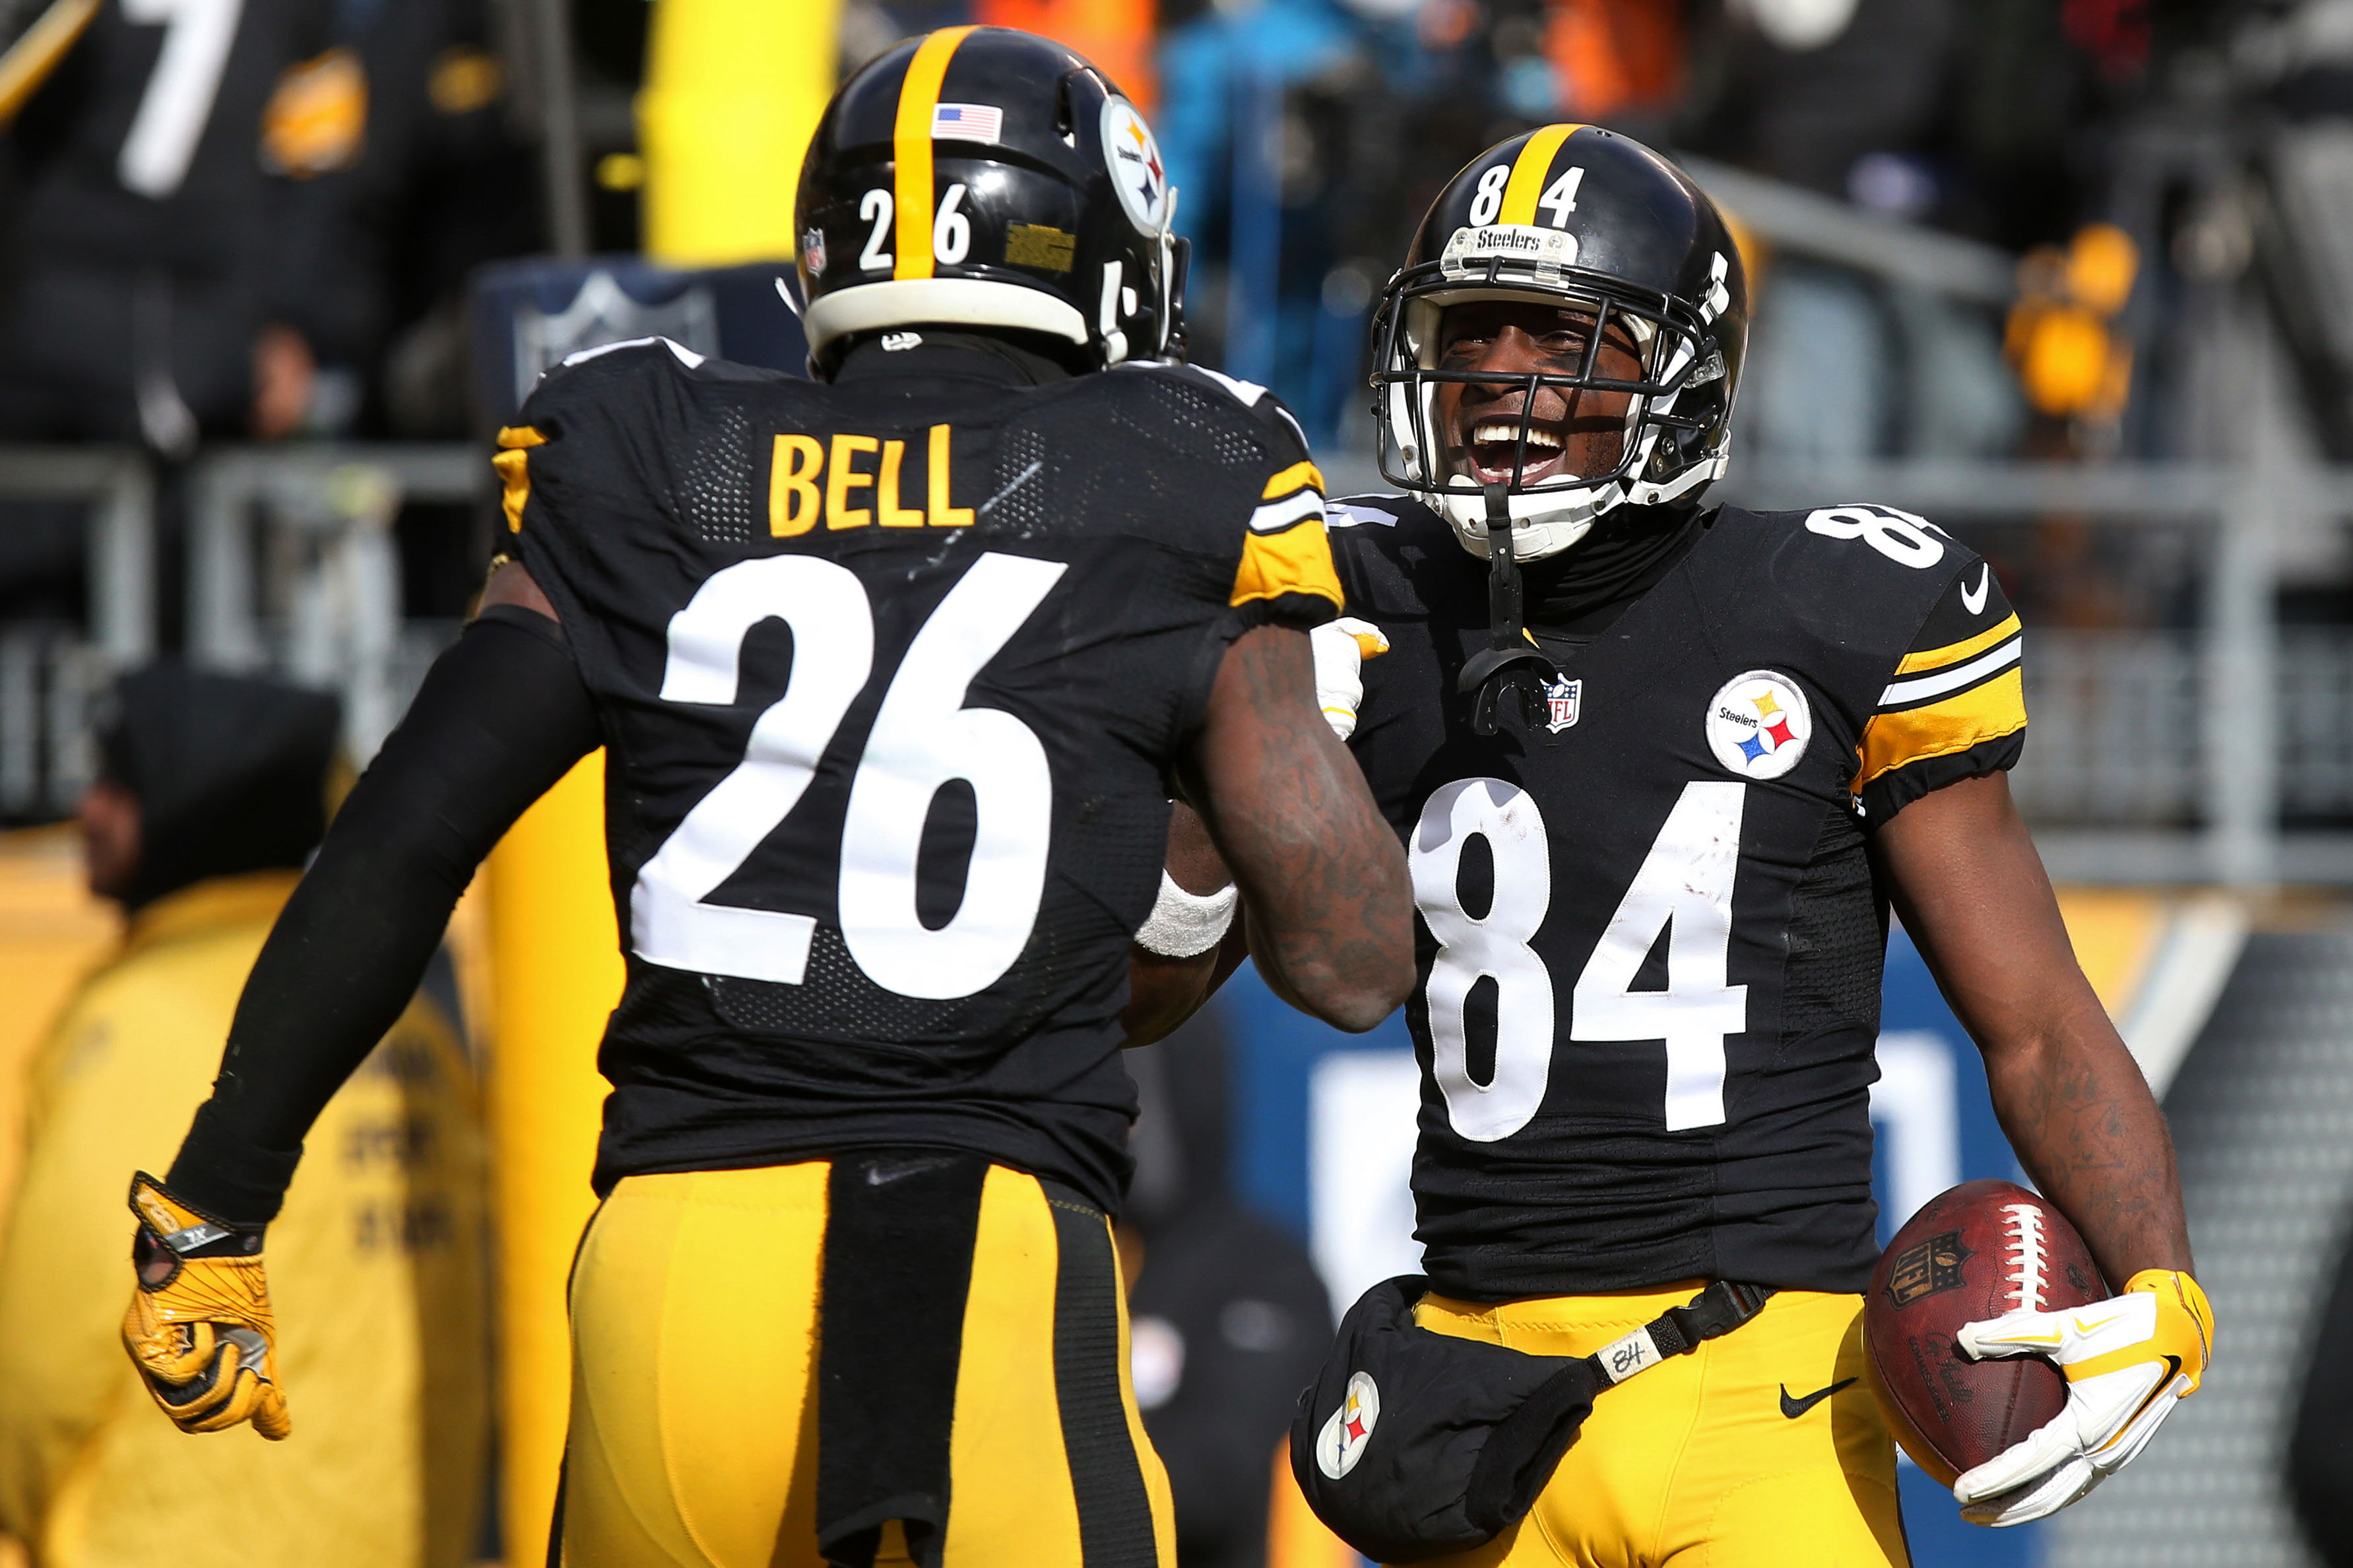 9805439-nfl-afc-wild-card-miami-dolphins-at-pittsburgh-steelers